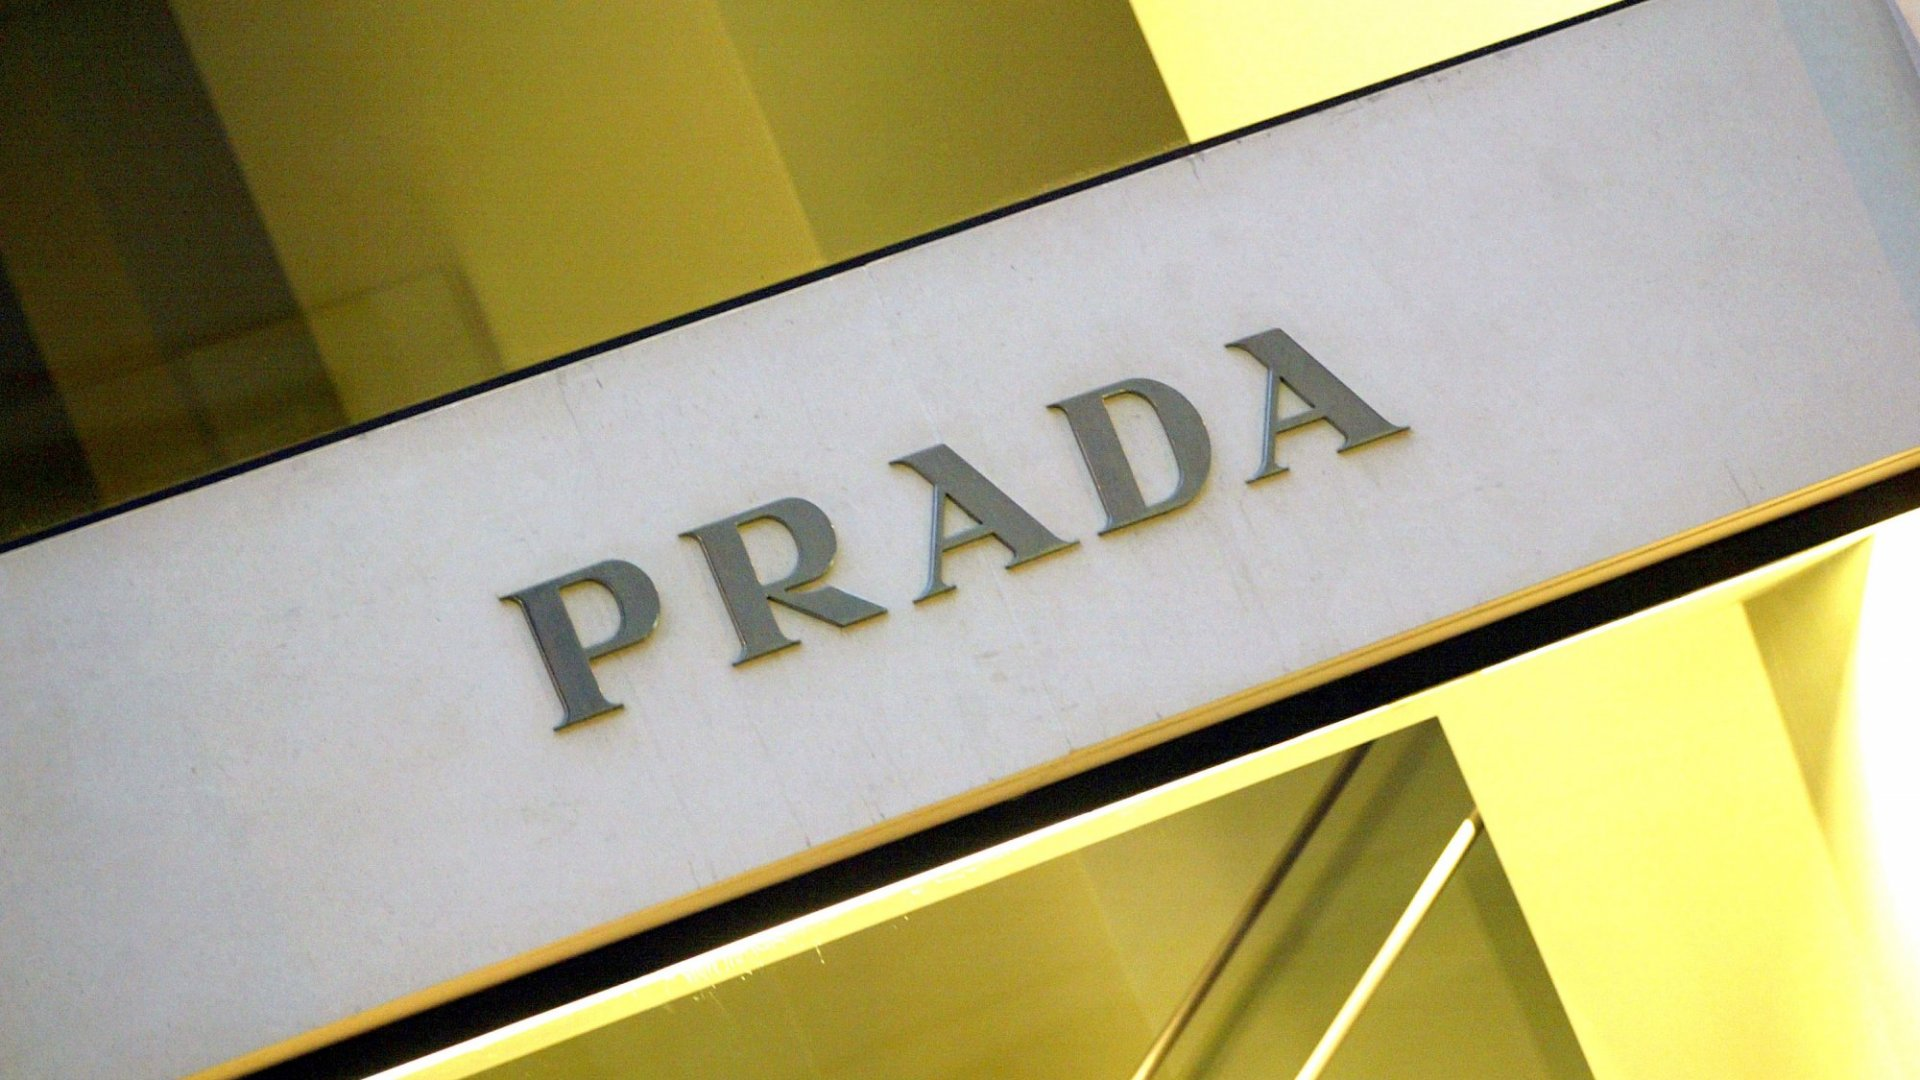 Prada Signed an Expansive Settlement With New York City for Producing Culturally Insensitive Marketing. Here's Why it Matters